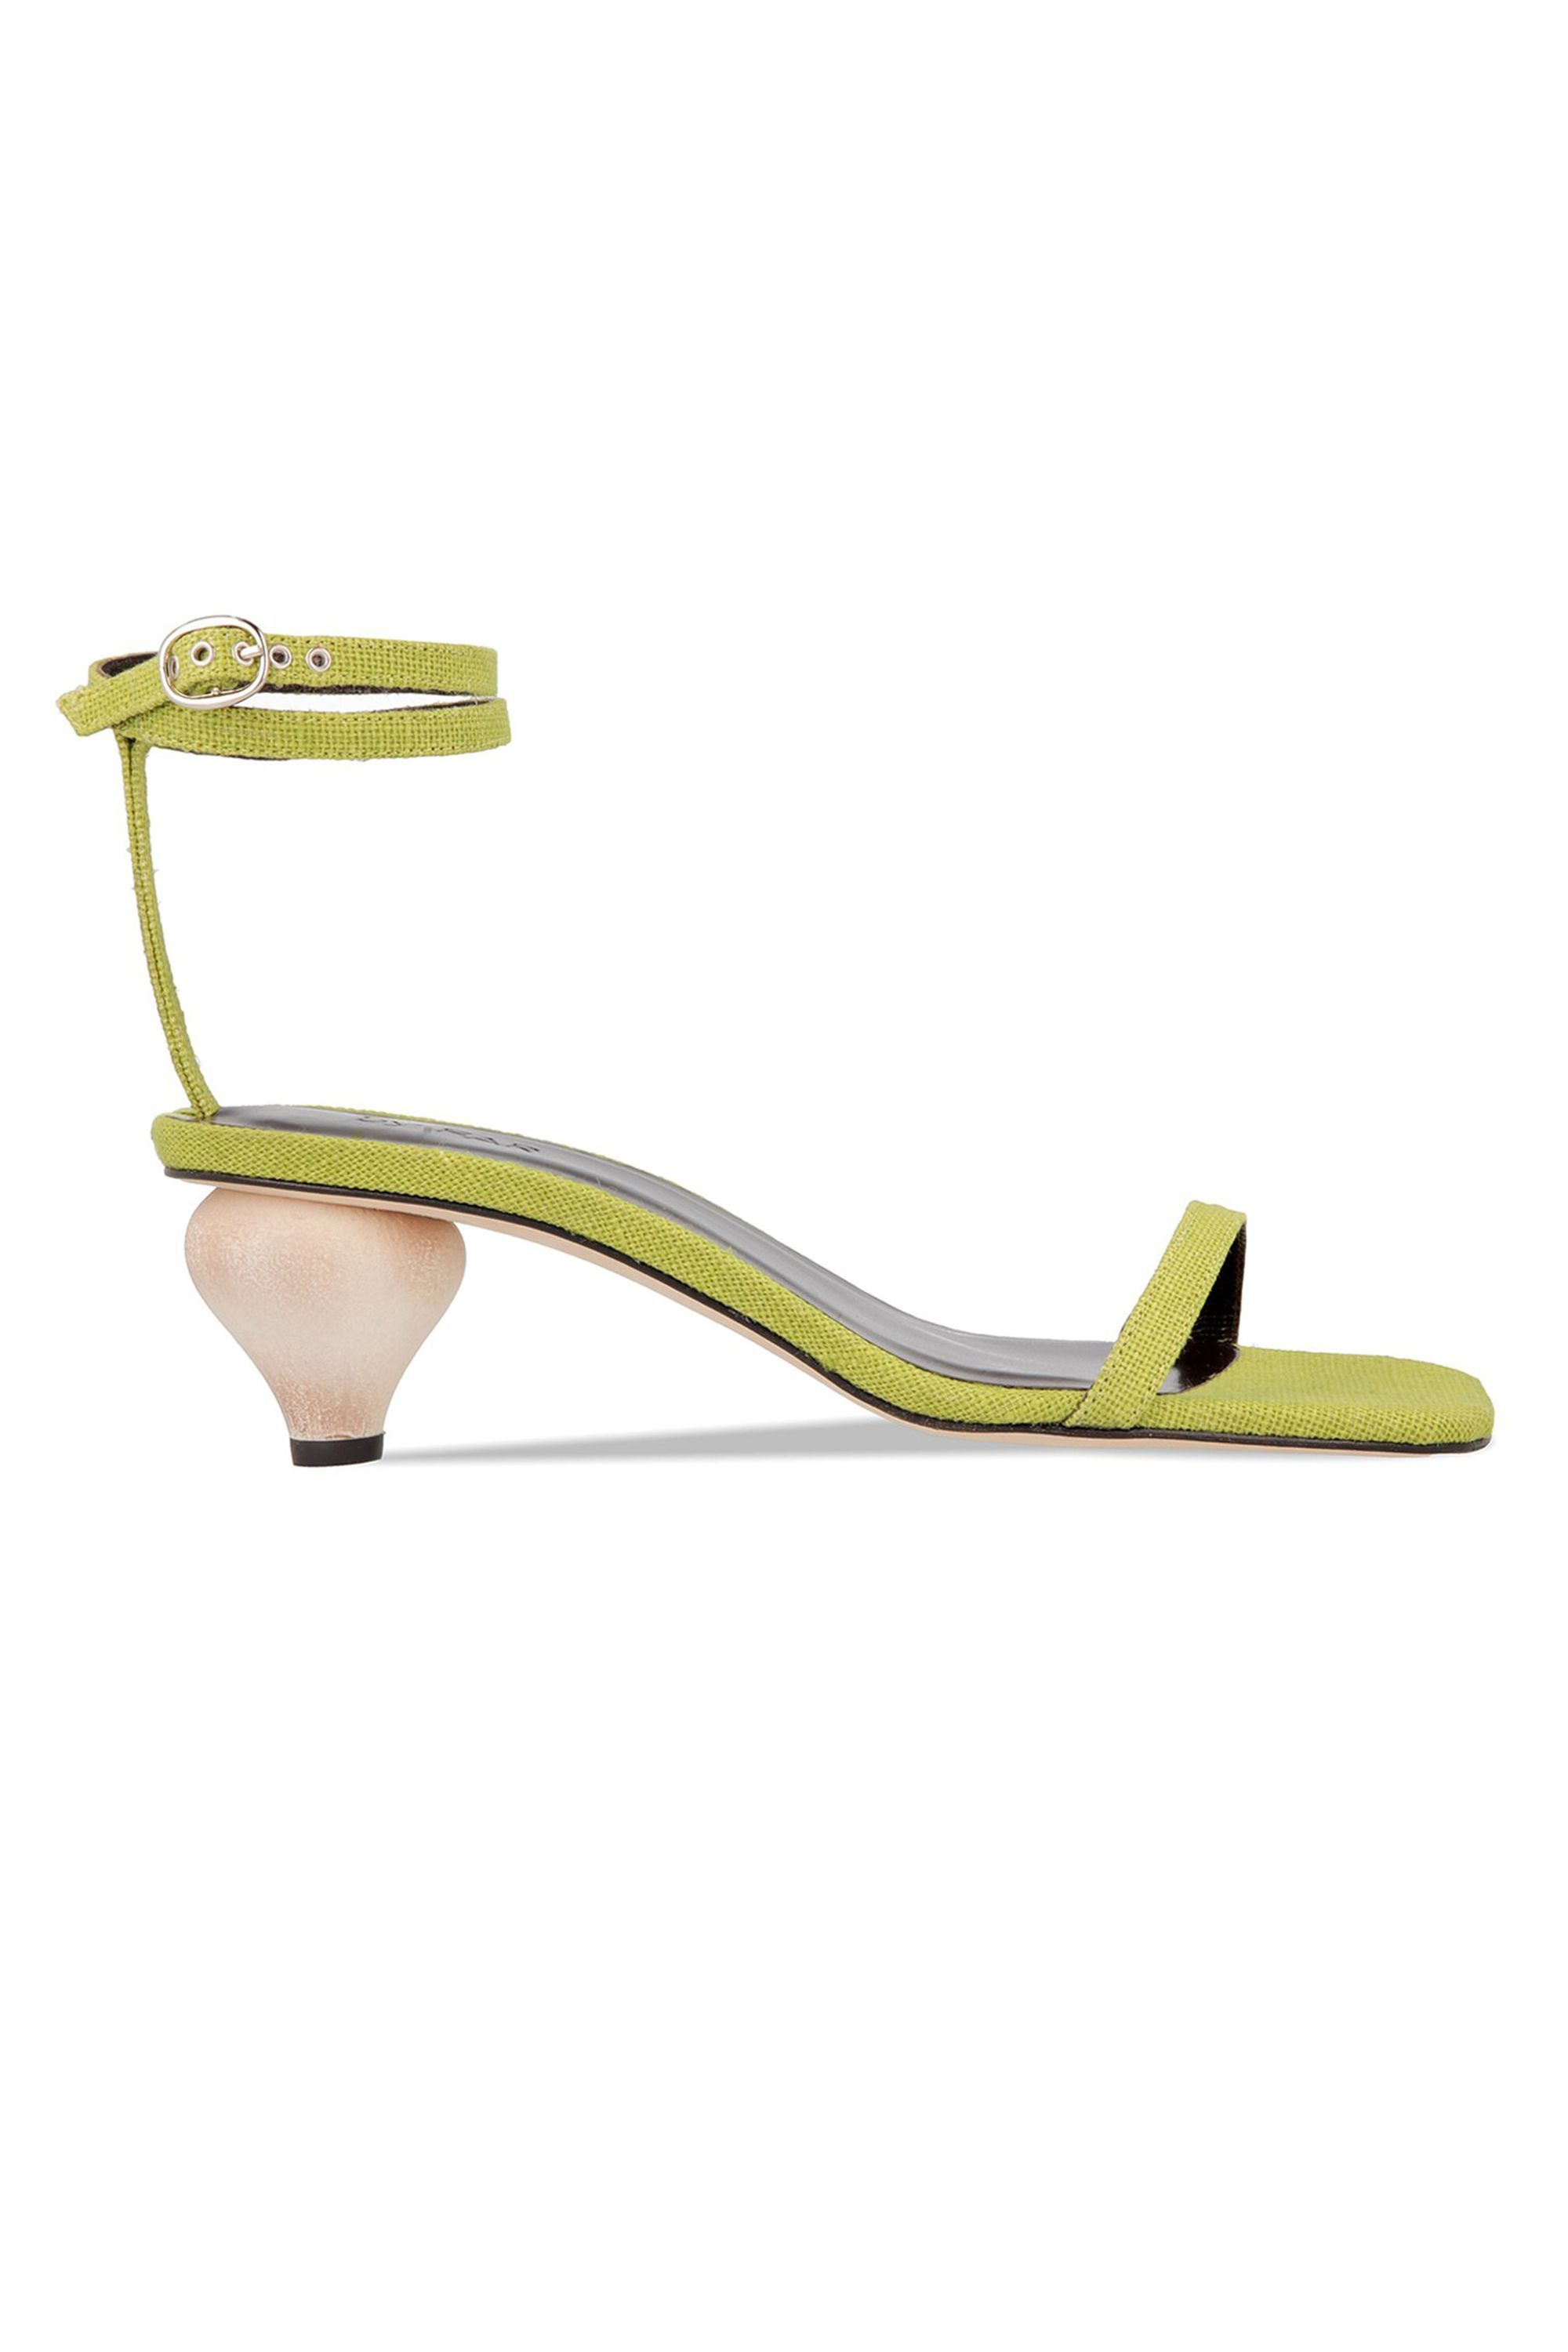 9bc873326a82 Cute Summer Sandals 2019 - 24 Trendy Pairs of Sandals and and Heels for  Summer